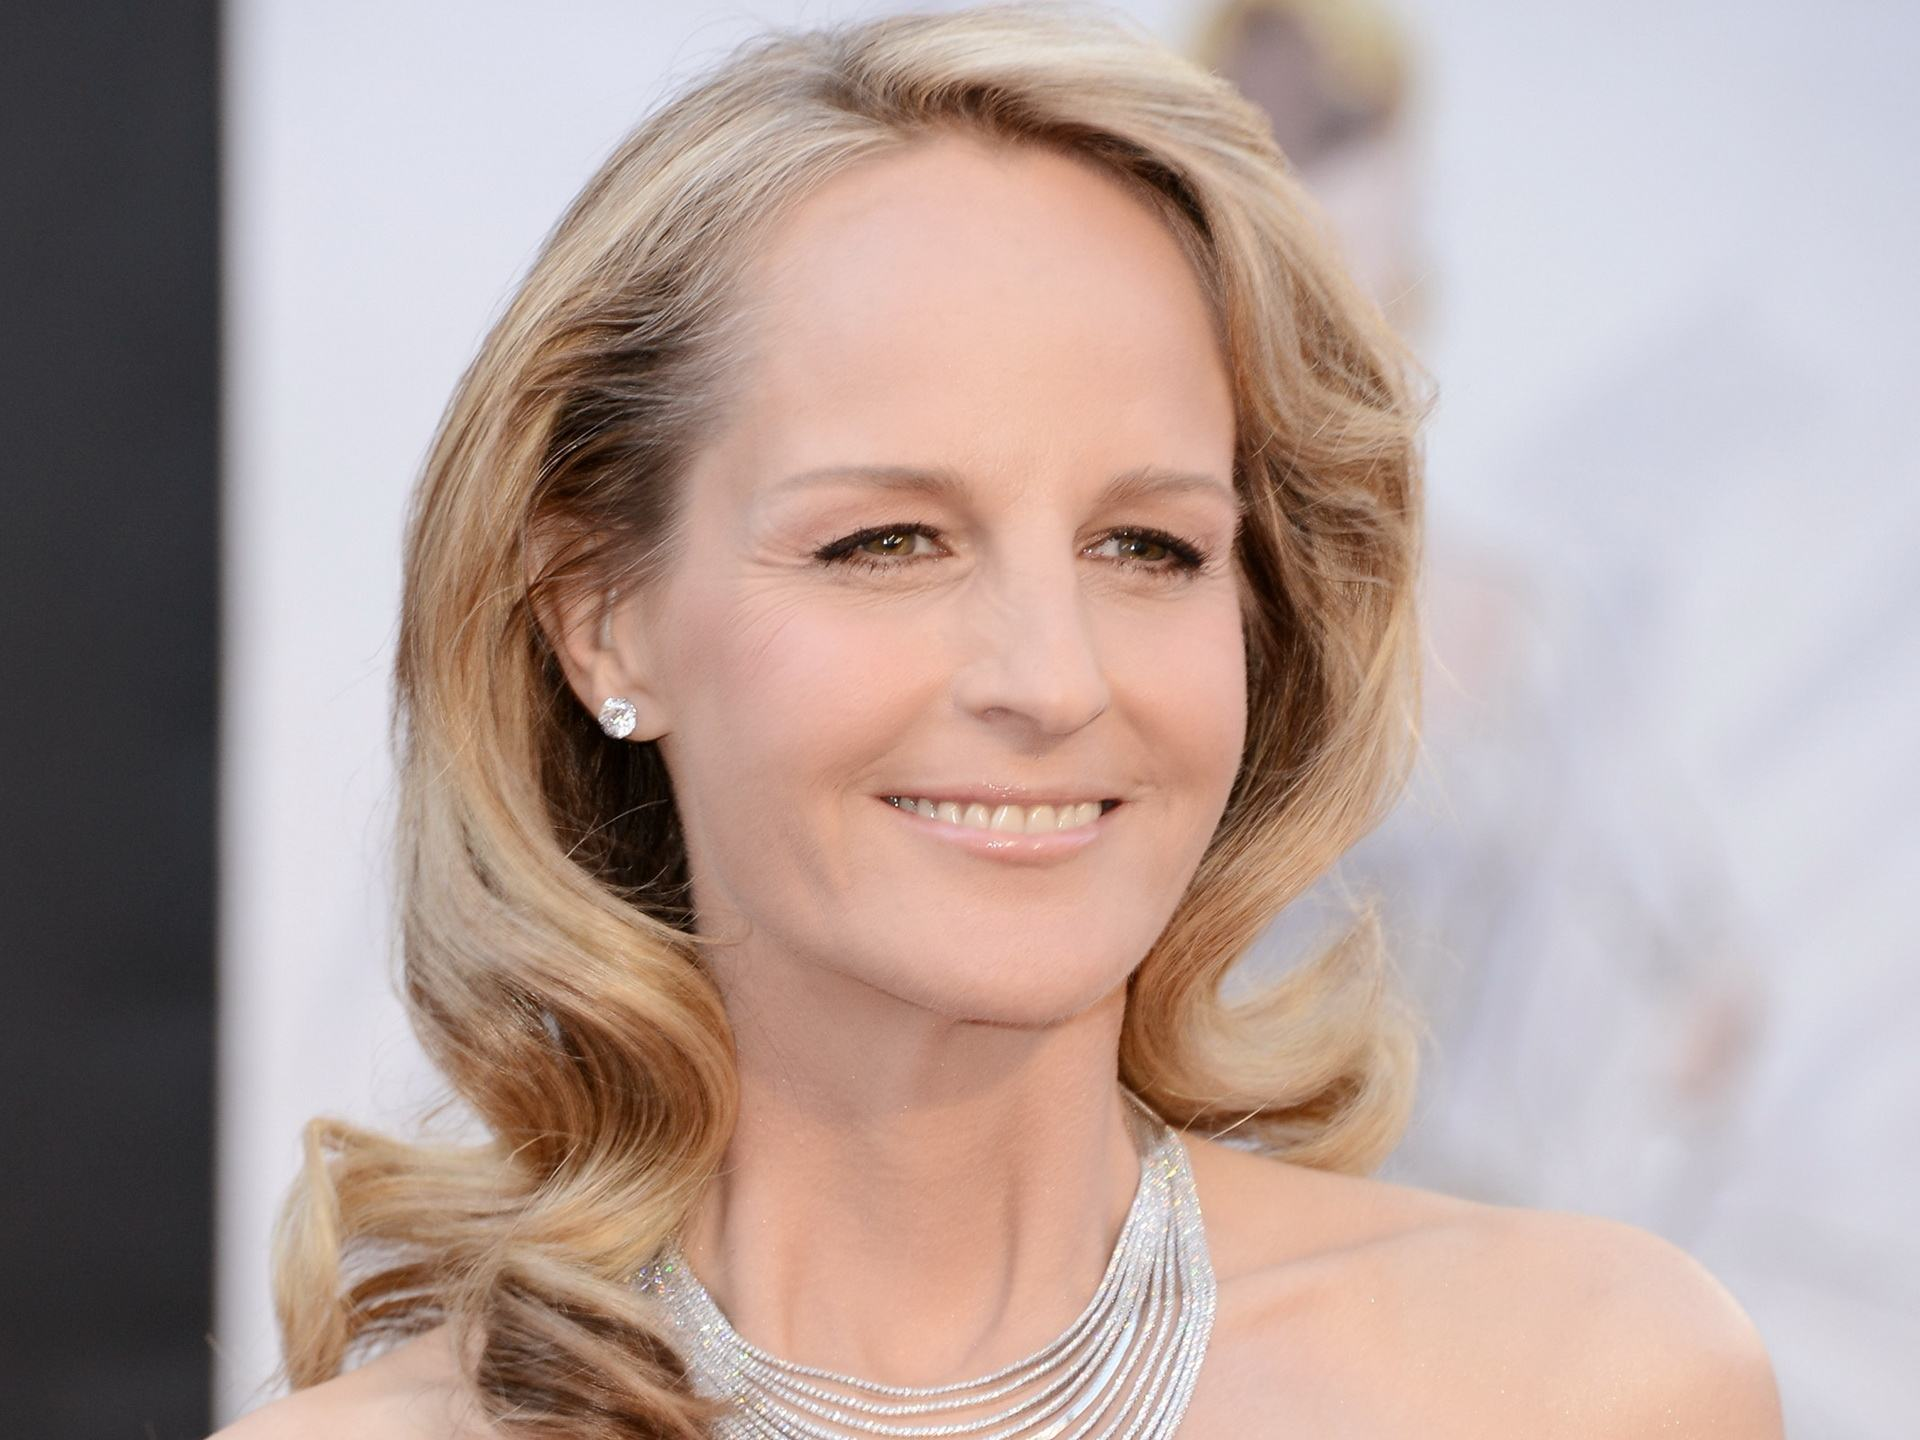 helen hunt widescreen desktop wallpaper 1336